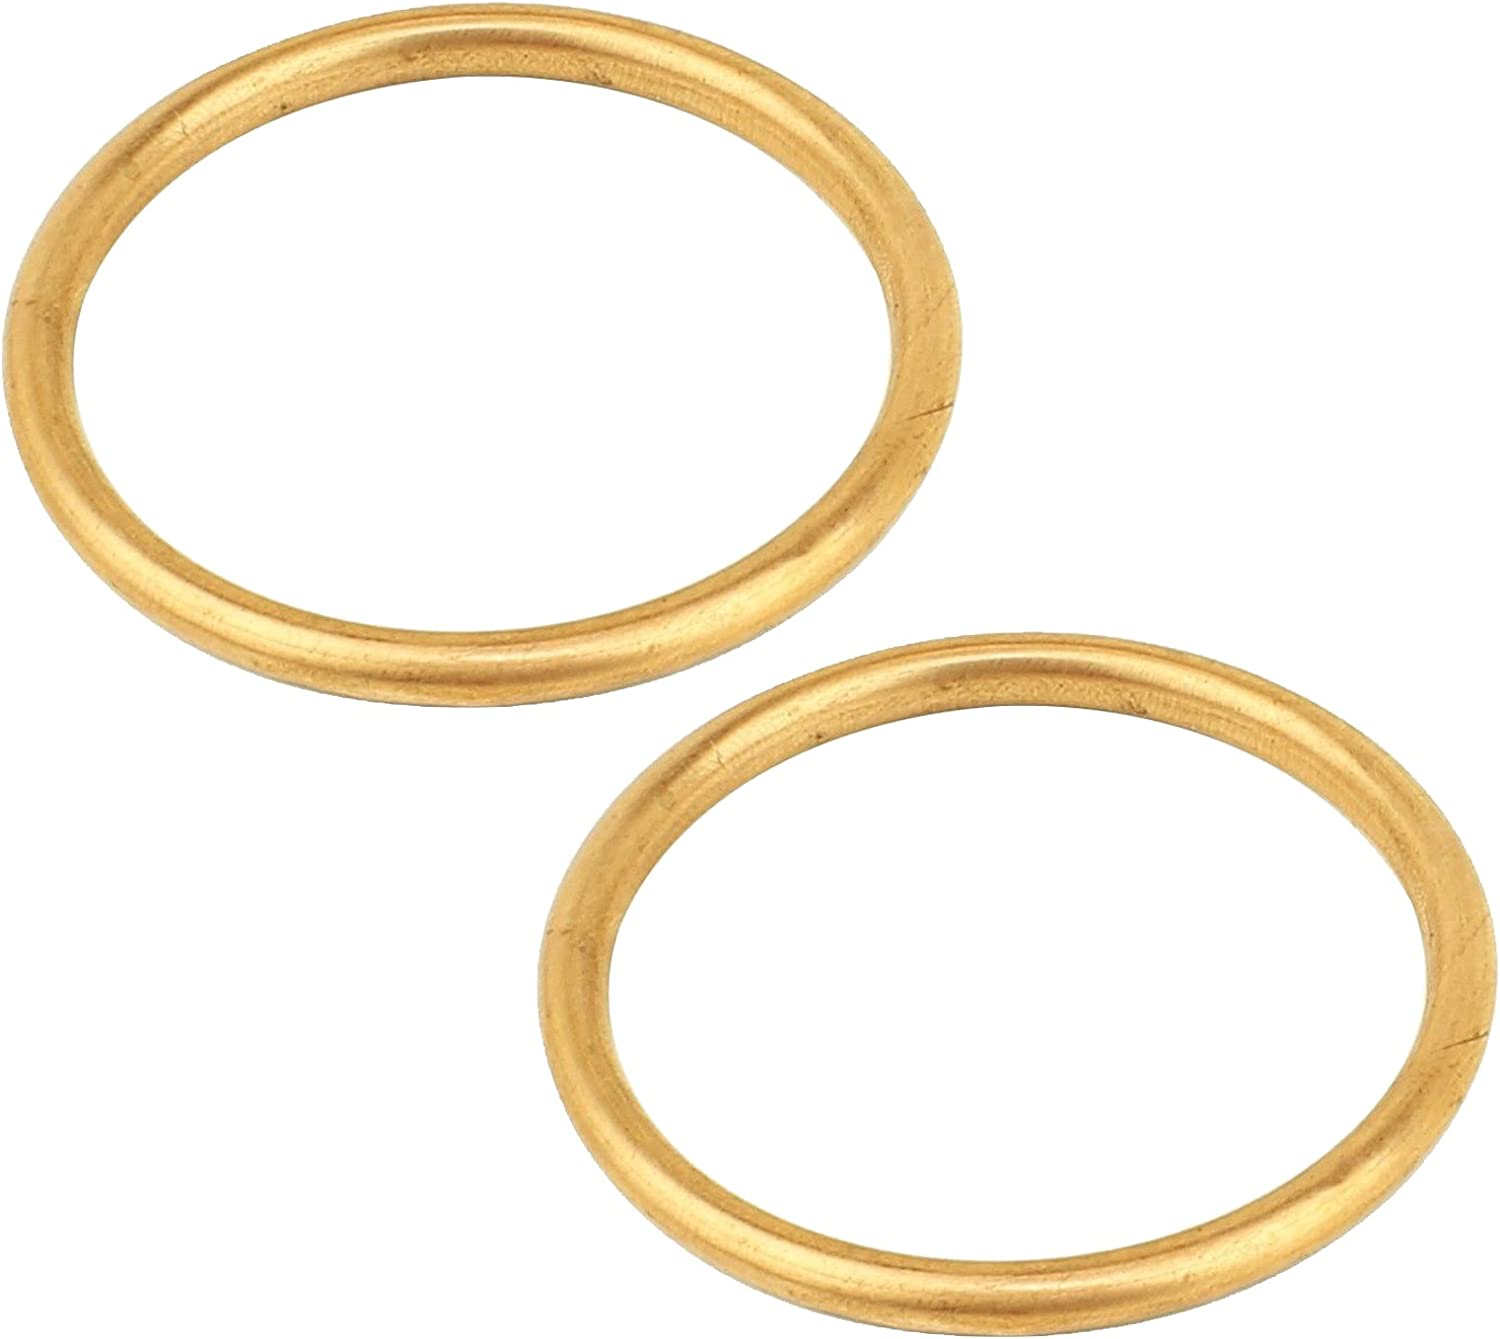 Caltric Exhaust Pipe Gaskets Compatible Shad Vt1100C3 With Max 70% OFF Honda Our shop OFFers the best service